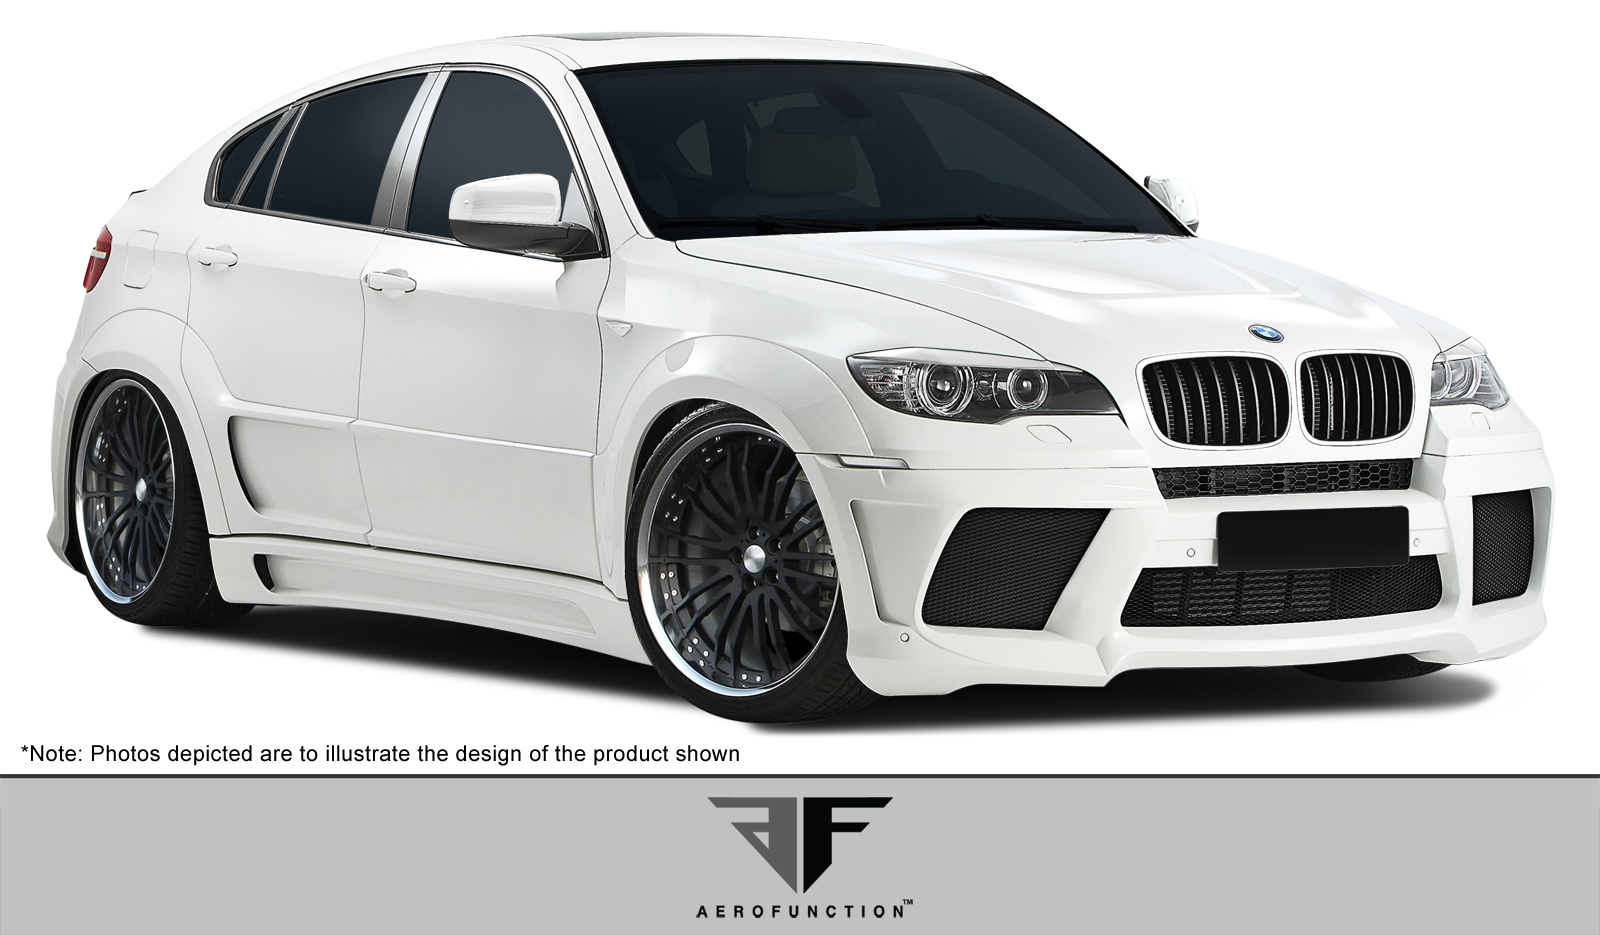 Other Body Kit Bodykit for 2014 BMW X6 ALL - BMW X6 X6M AF-3 Wide Body Kit ( GFK ) - 13 Piece - Includes AF-3 Wide Body Front Bumper Cover (1079